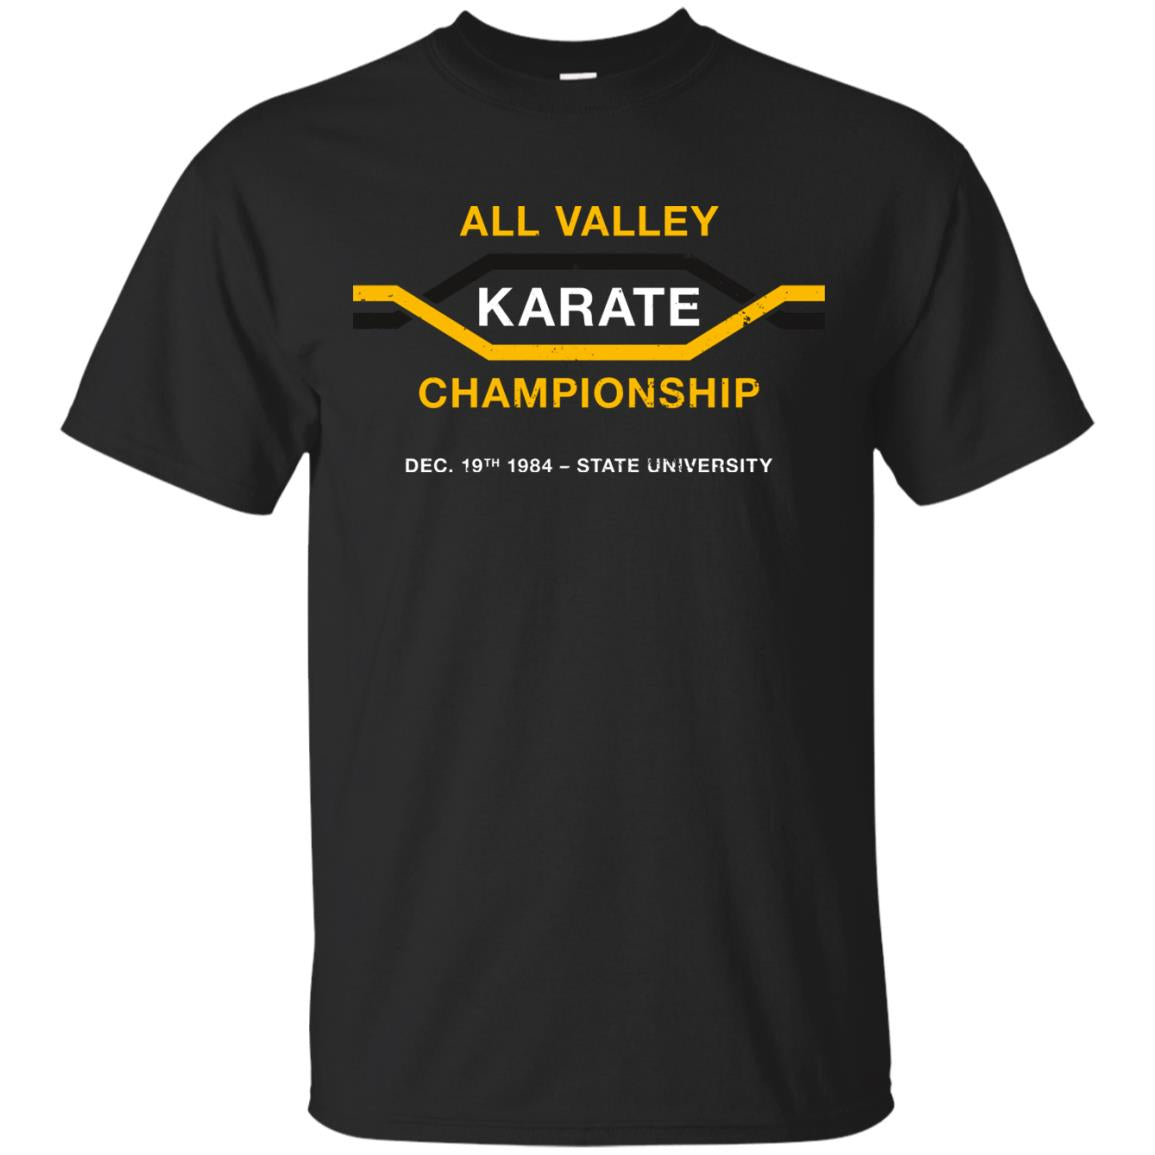 All Valley Karate Championship  aged look  T Shirt